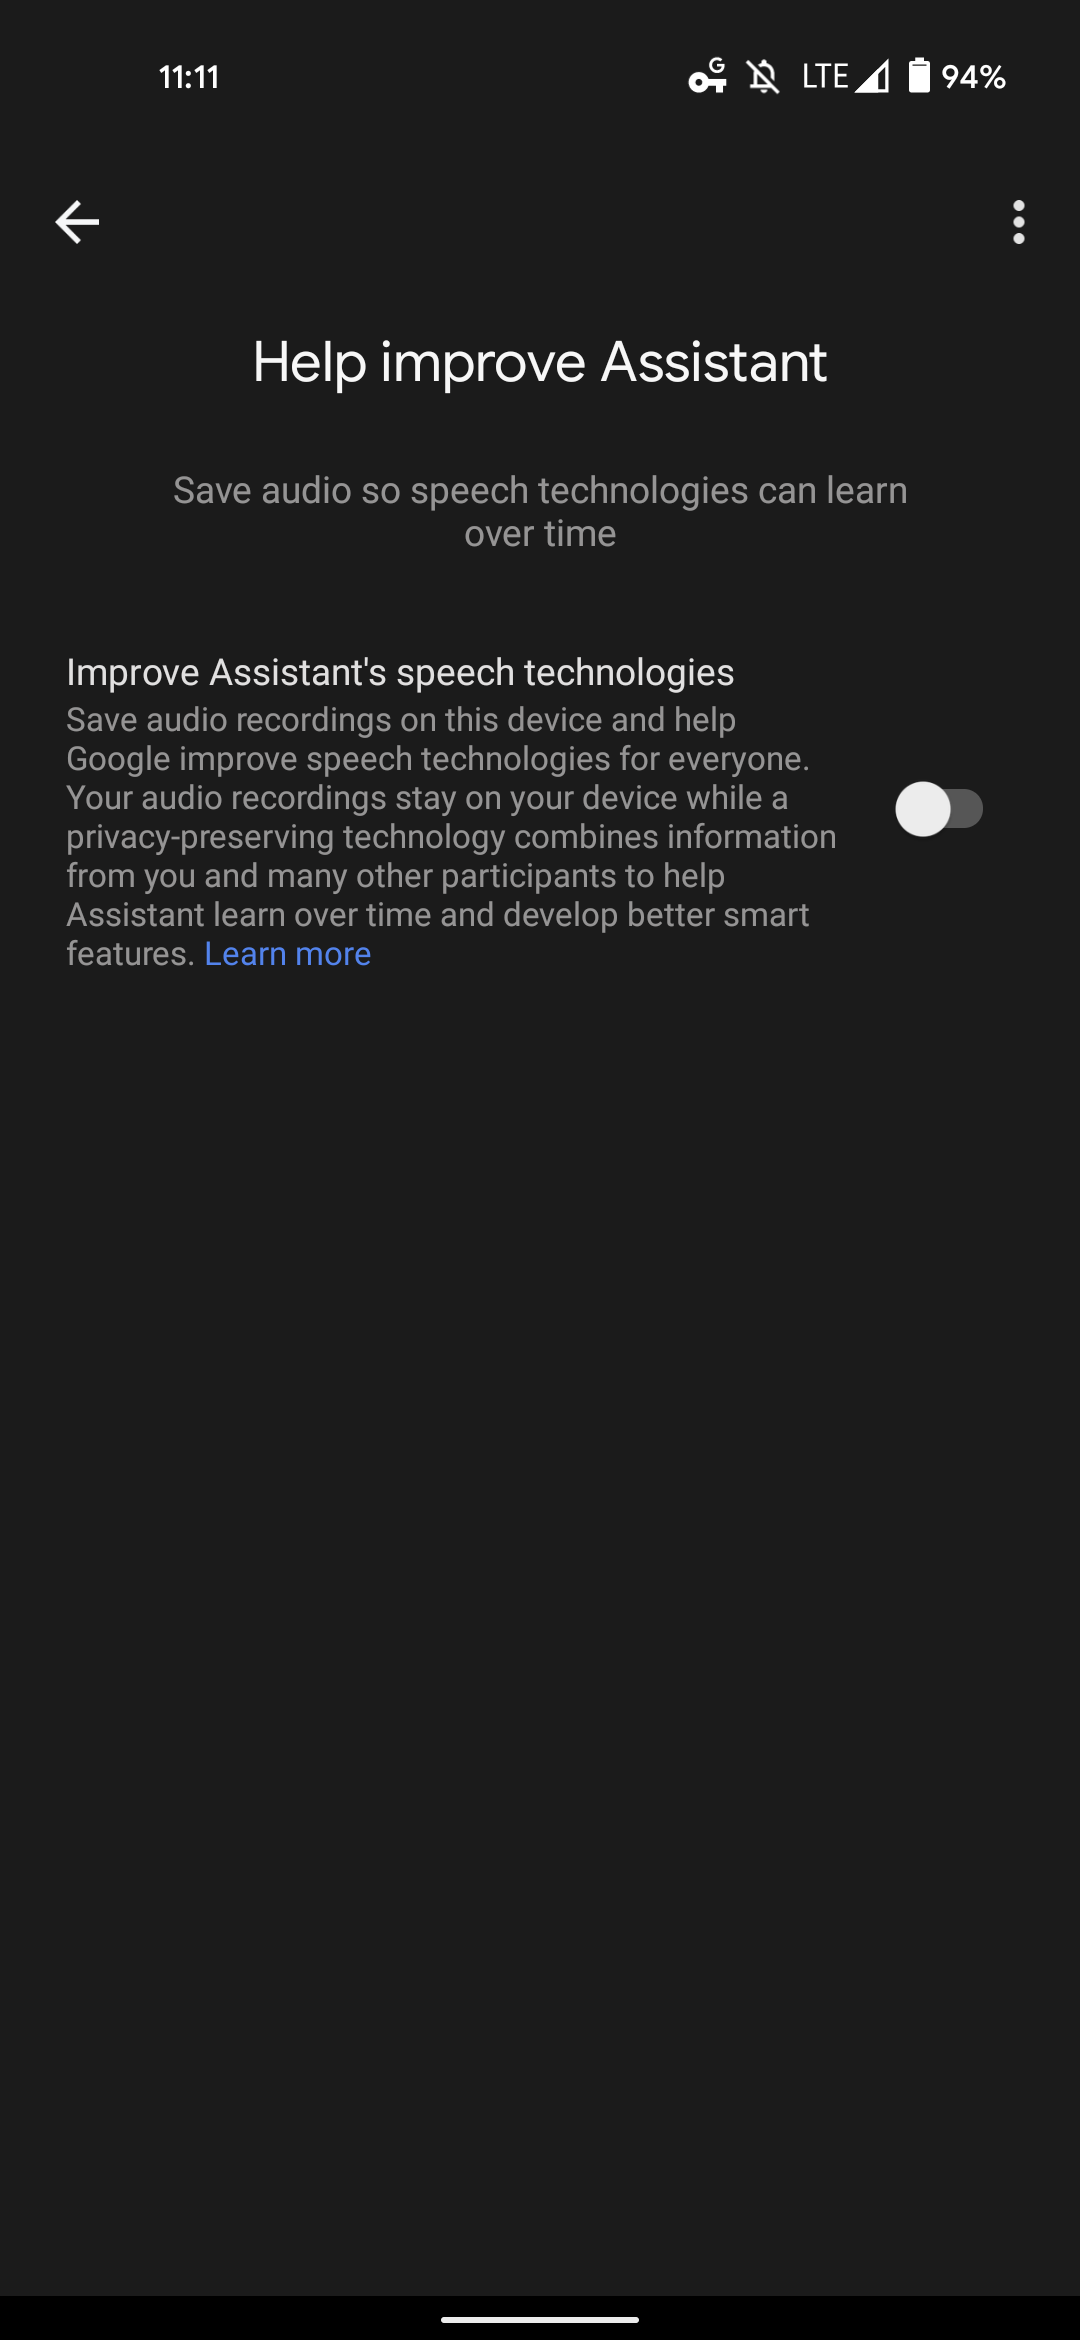 Google Assistant federated learning